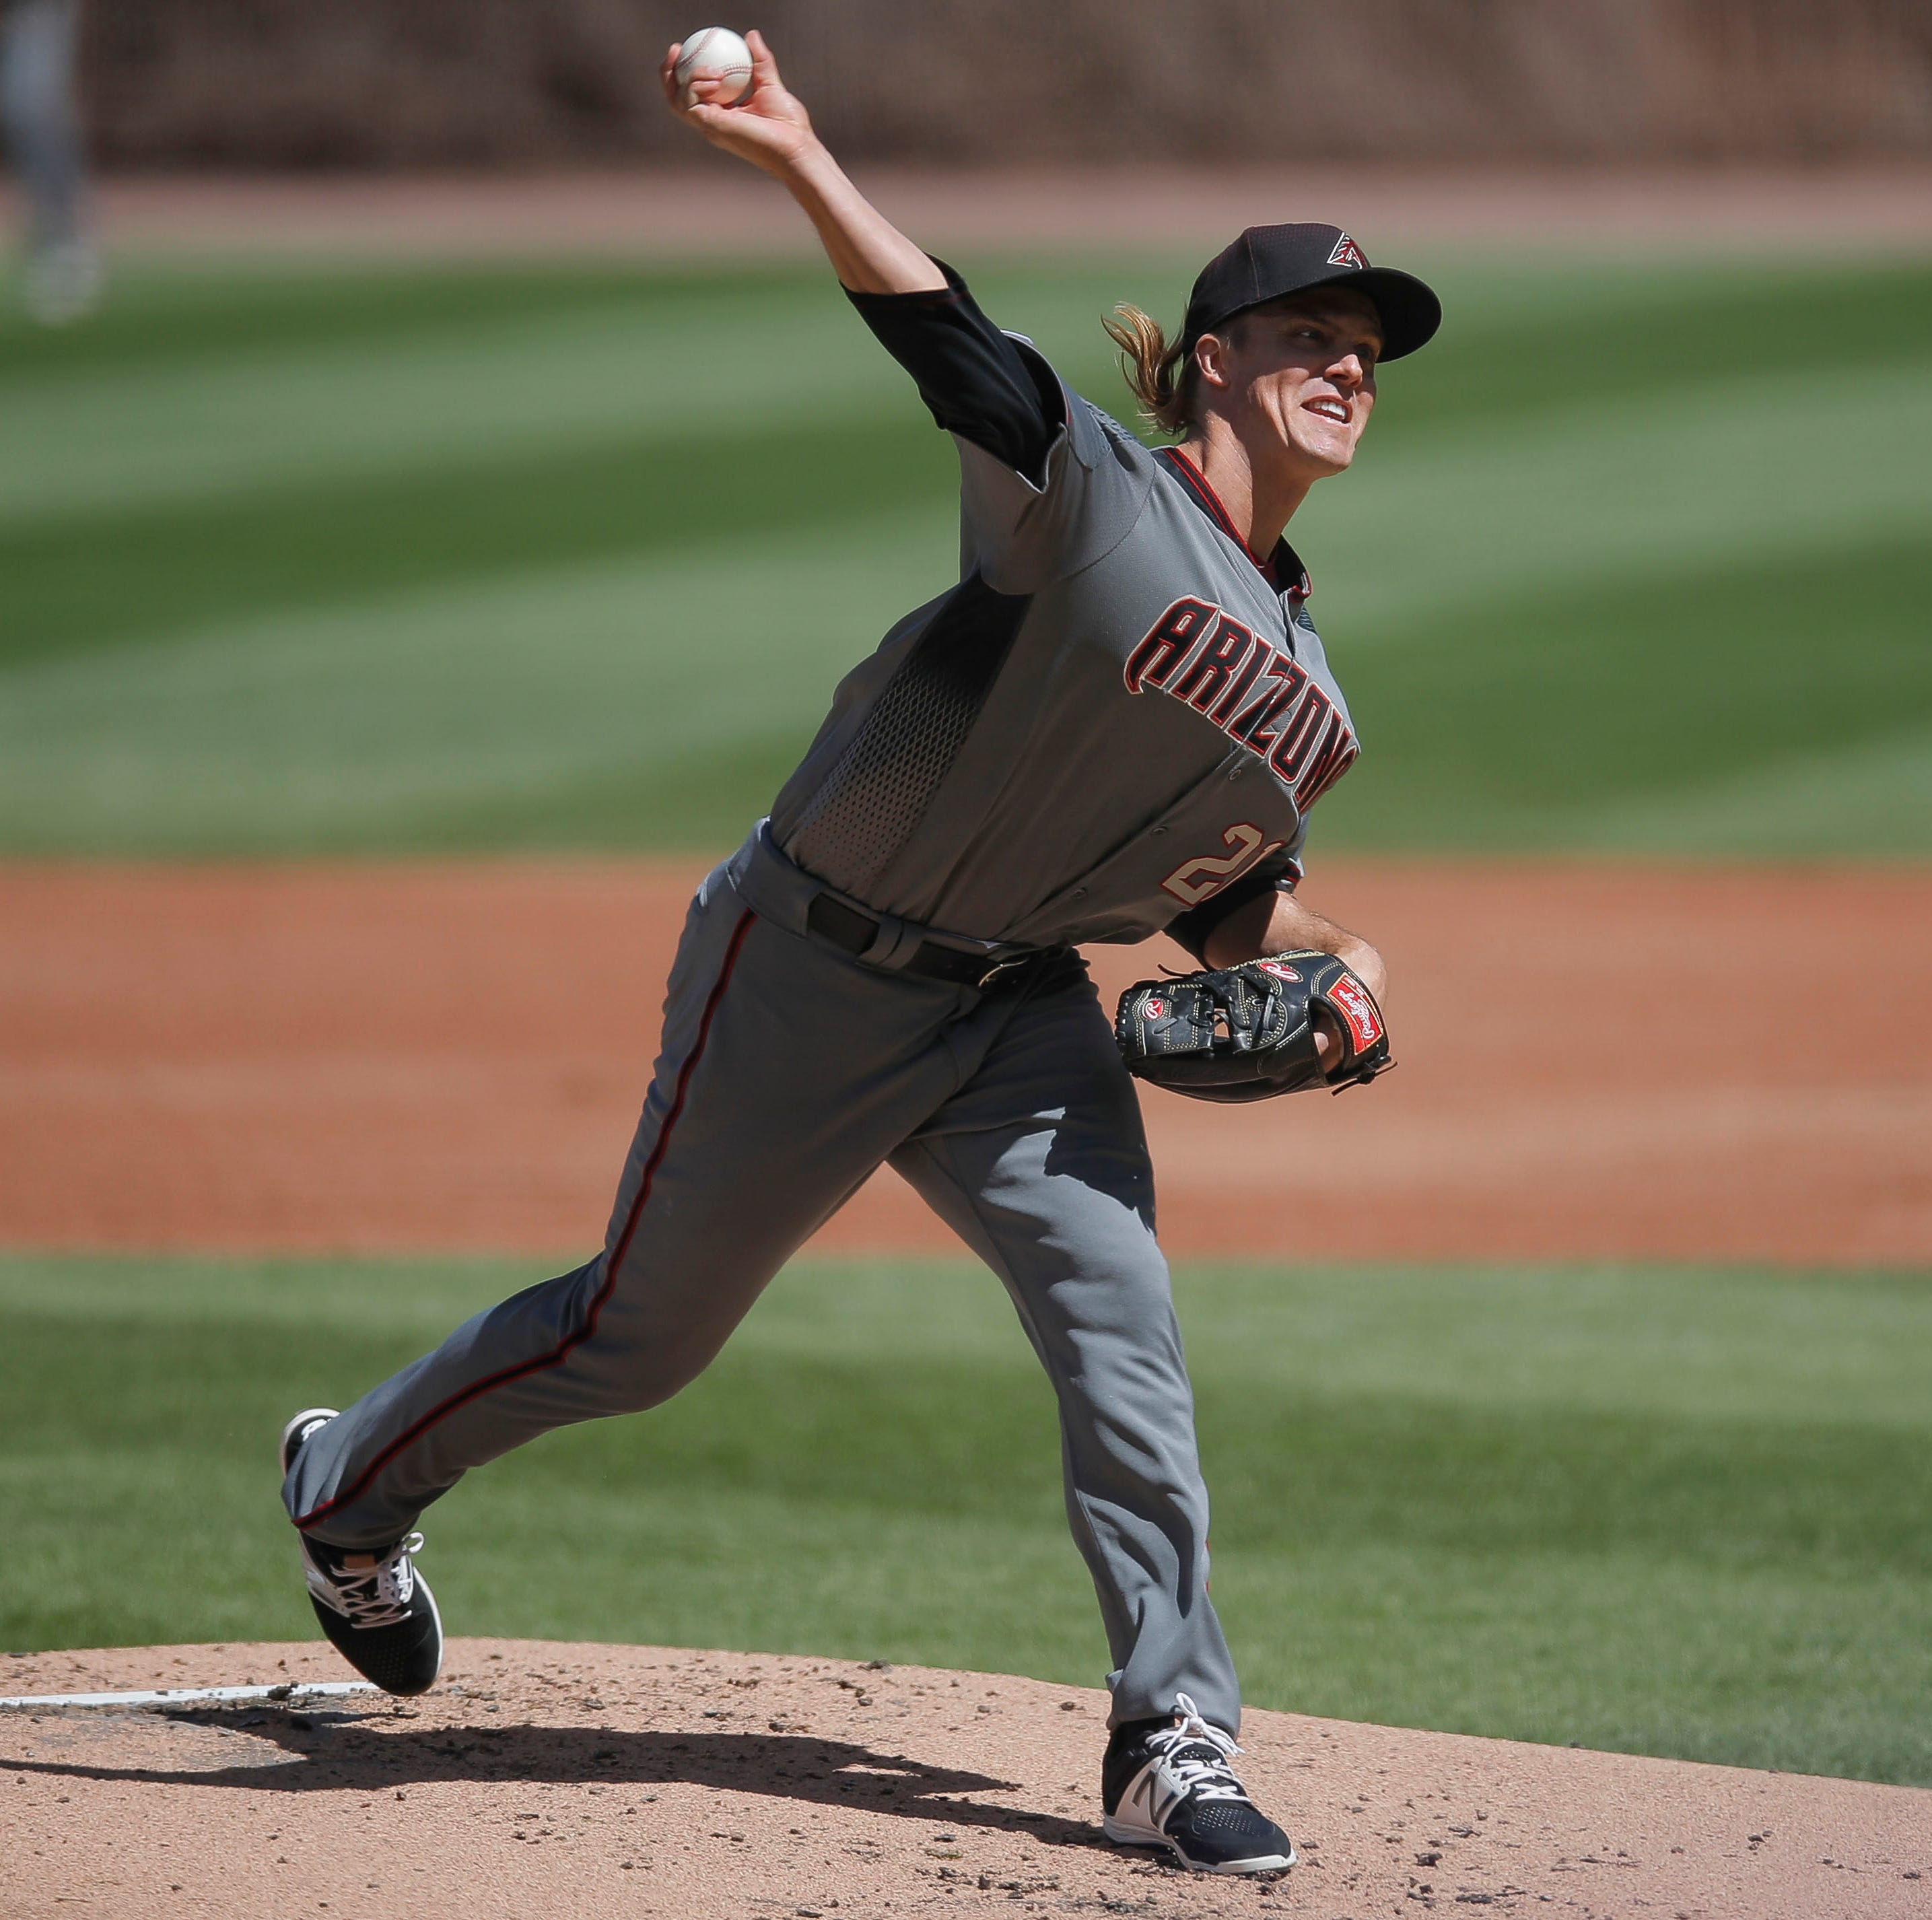 Greinke sharp, Diamondbacks even series vs. Cubs